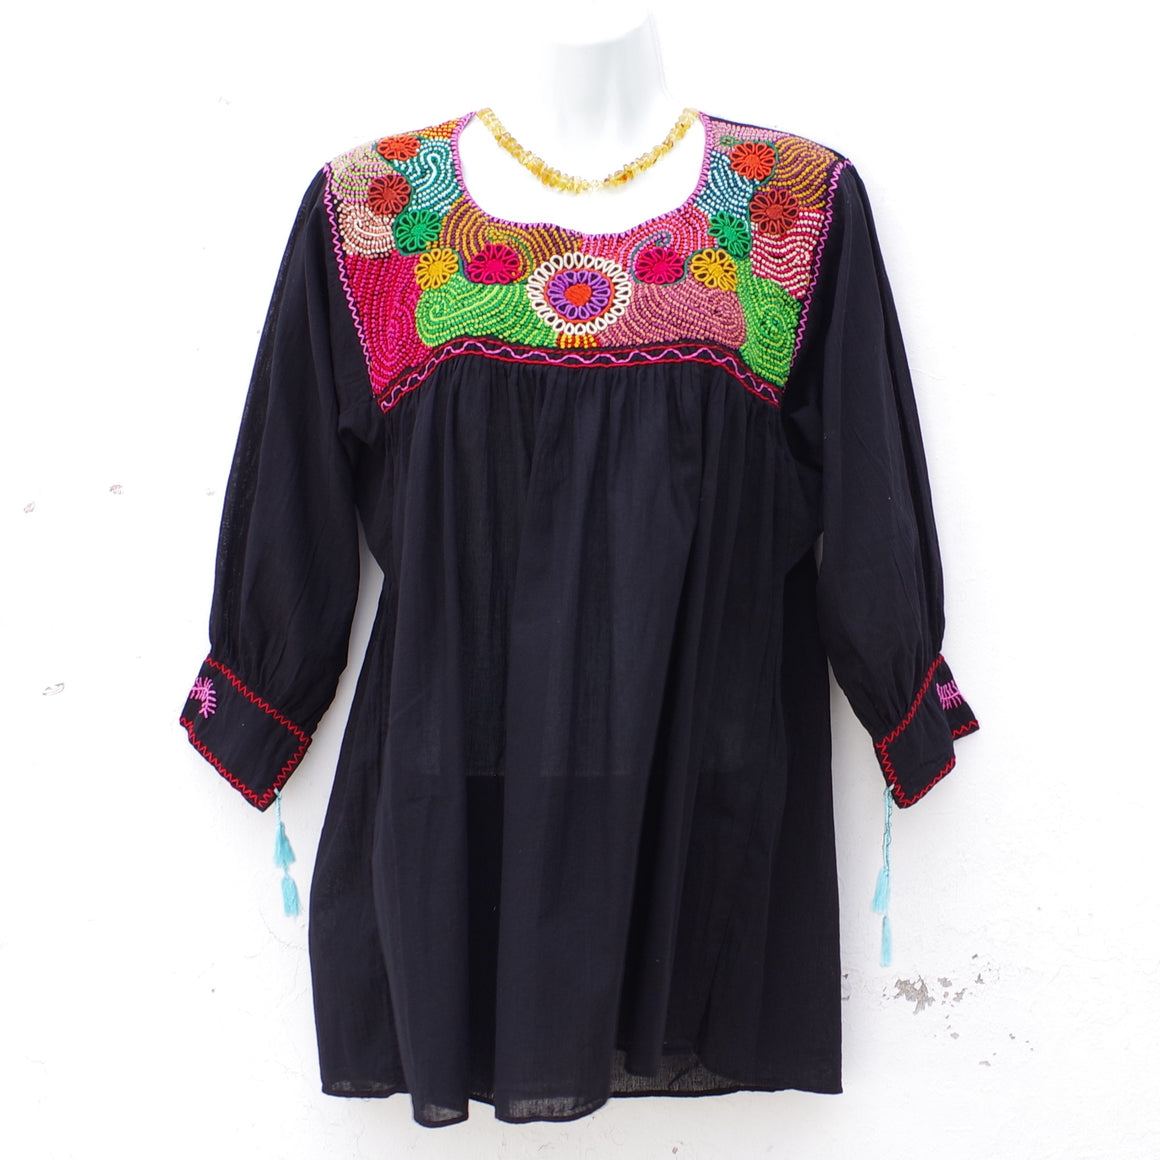 Black Mexican Huipil Round Neck Blouse with Multi color Flower and Leaves Hand Embroidery from Chiapas L Size